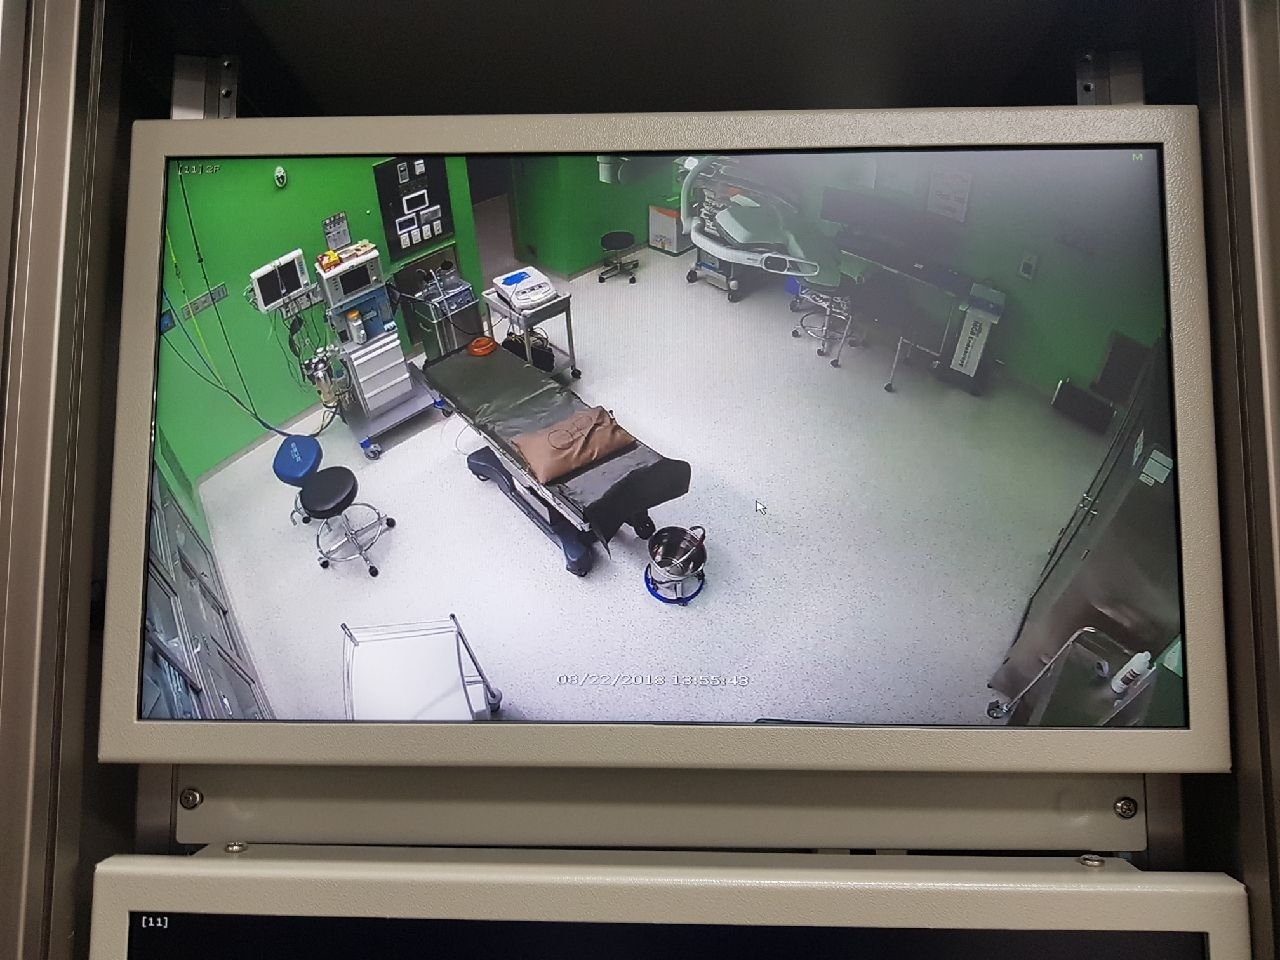 A screen shows surveillance camera footage from an operating room at the Gyeonggi Provincial Medical Center's Ansung Hospital. (Gyeonggi Provincial Government)